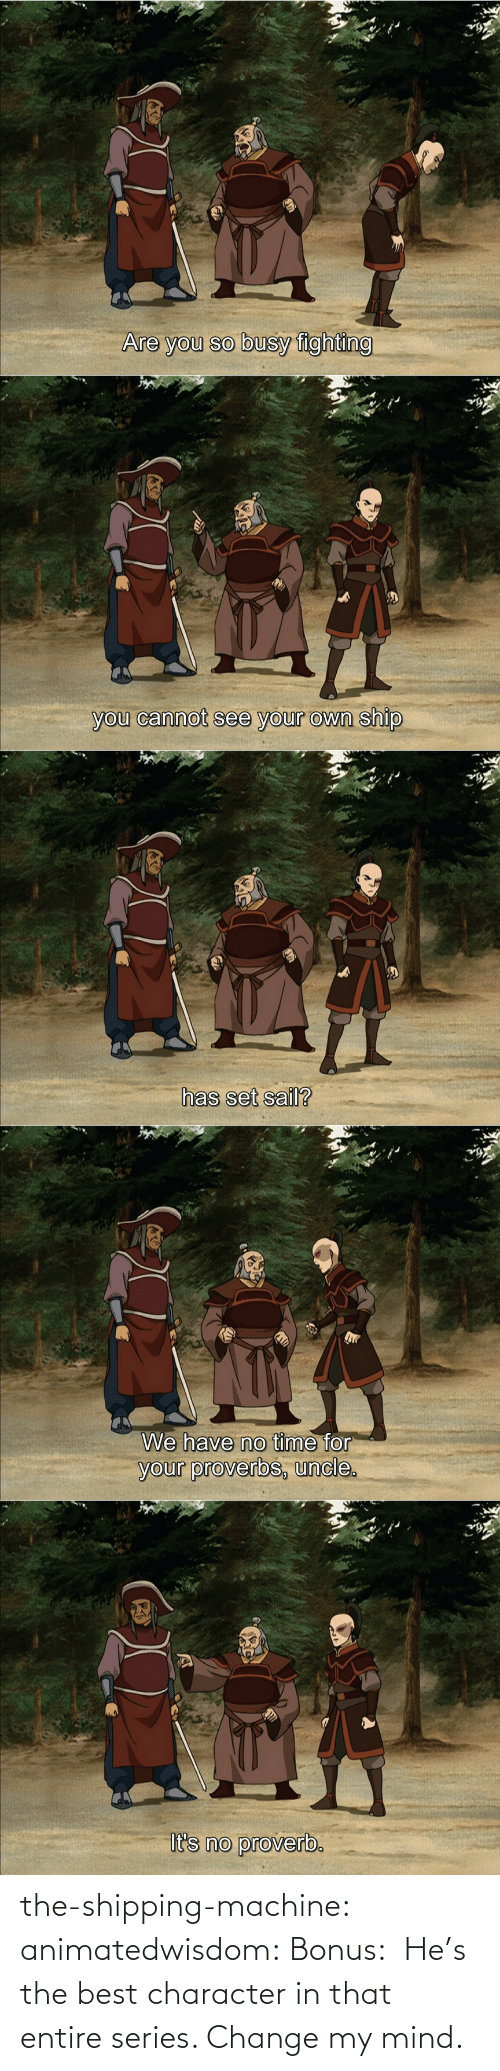 Target, Tumblr, and Best: the-shipping-machine: animatedwisdom:  Bonus:  He's the best character in that entire series. Change my mind.